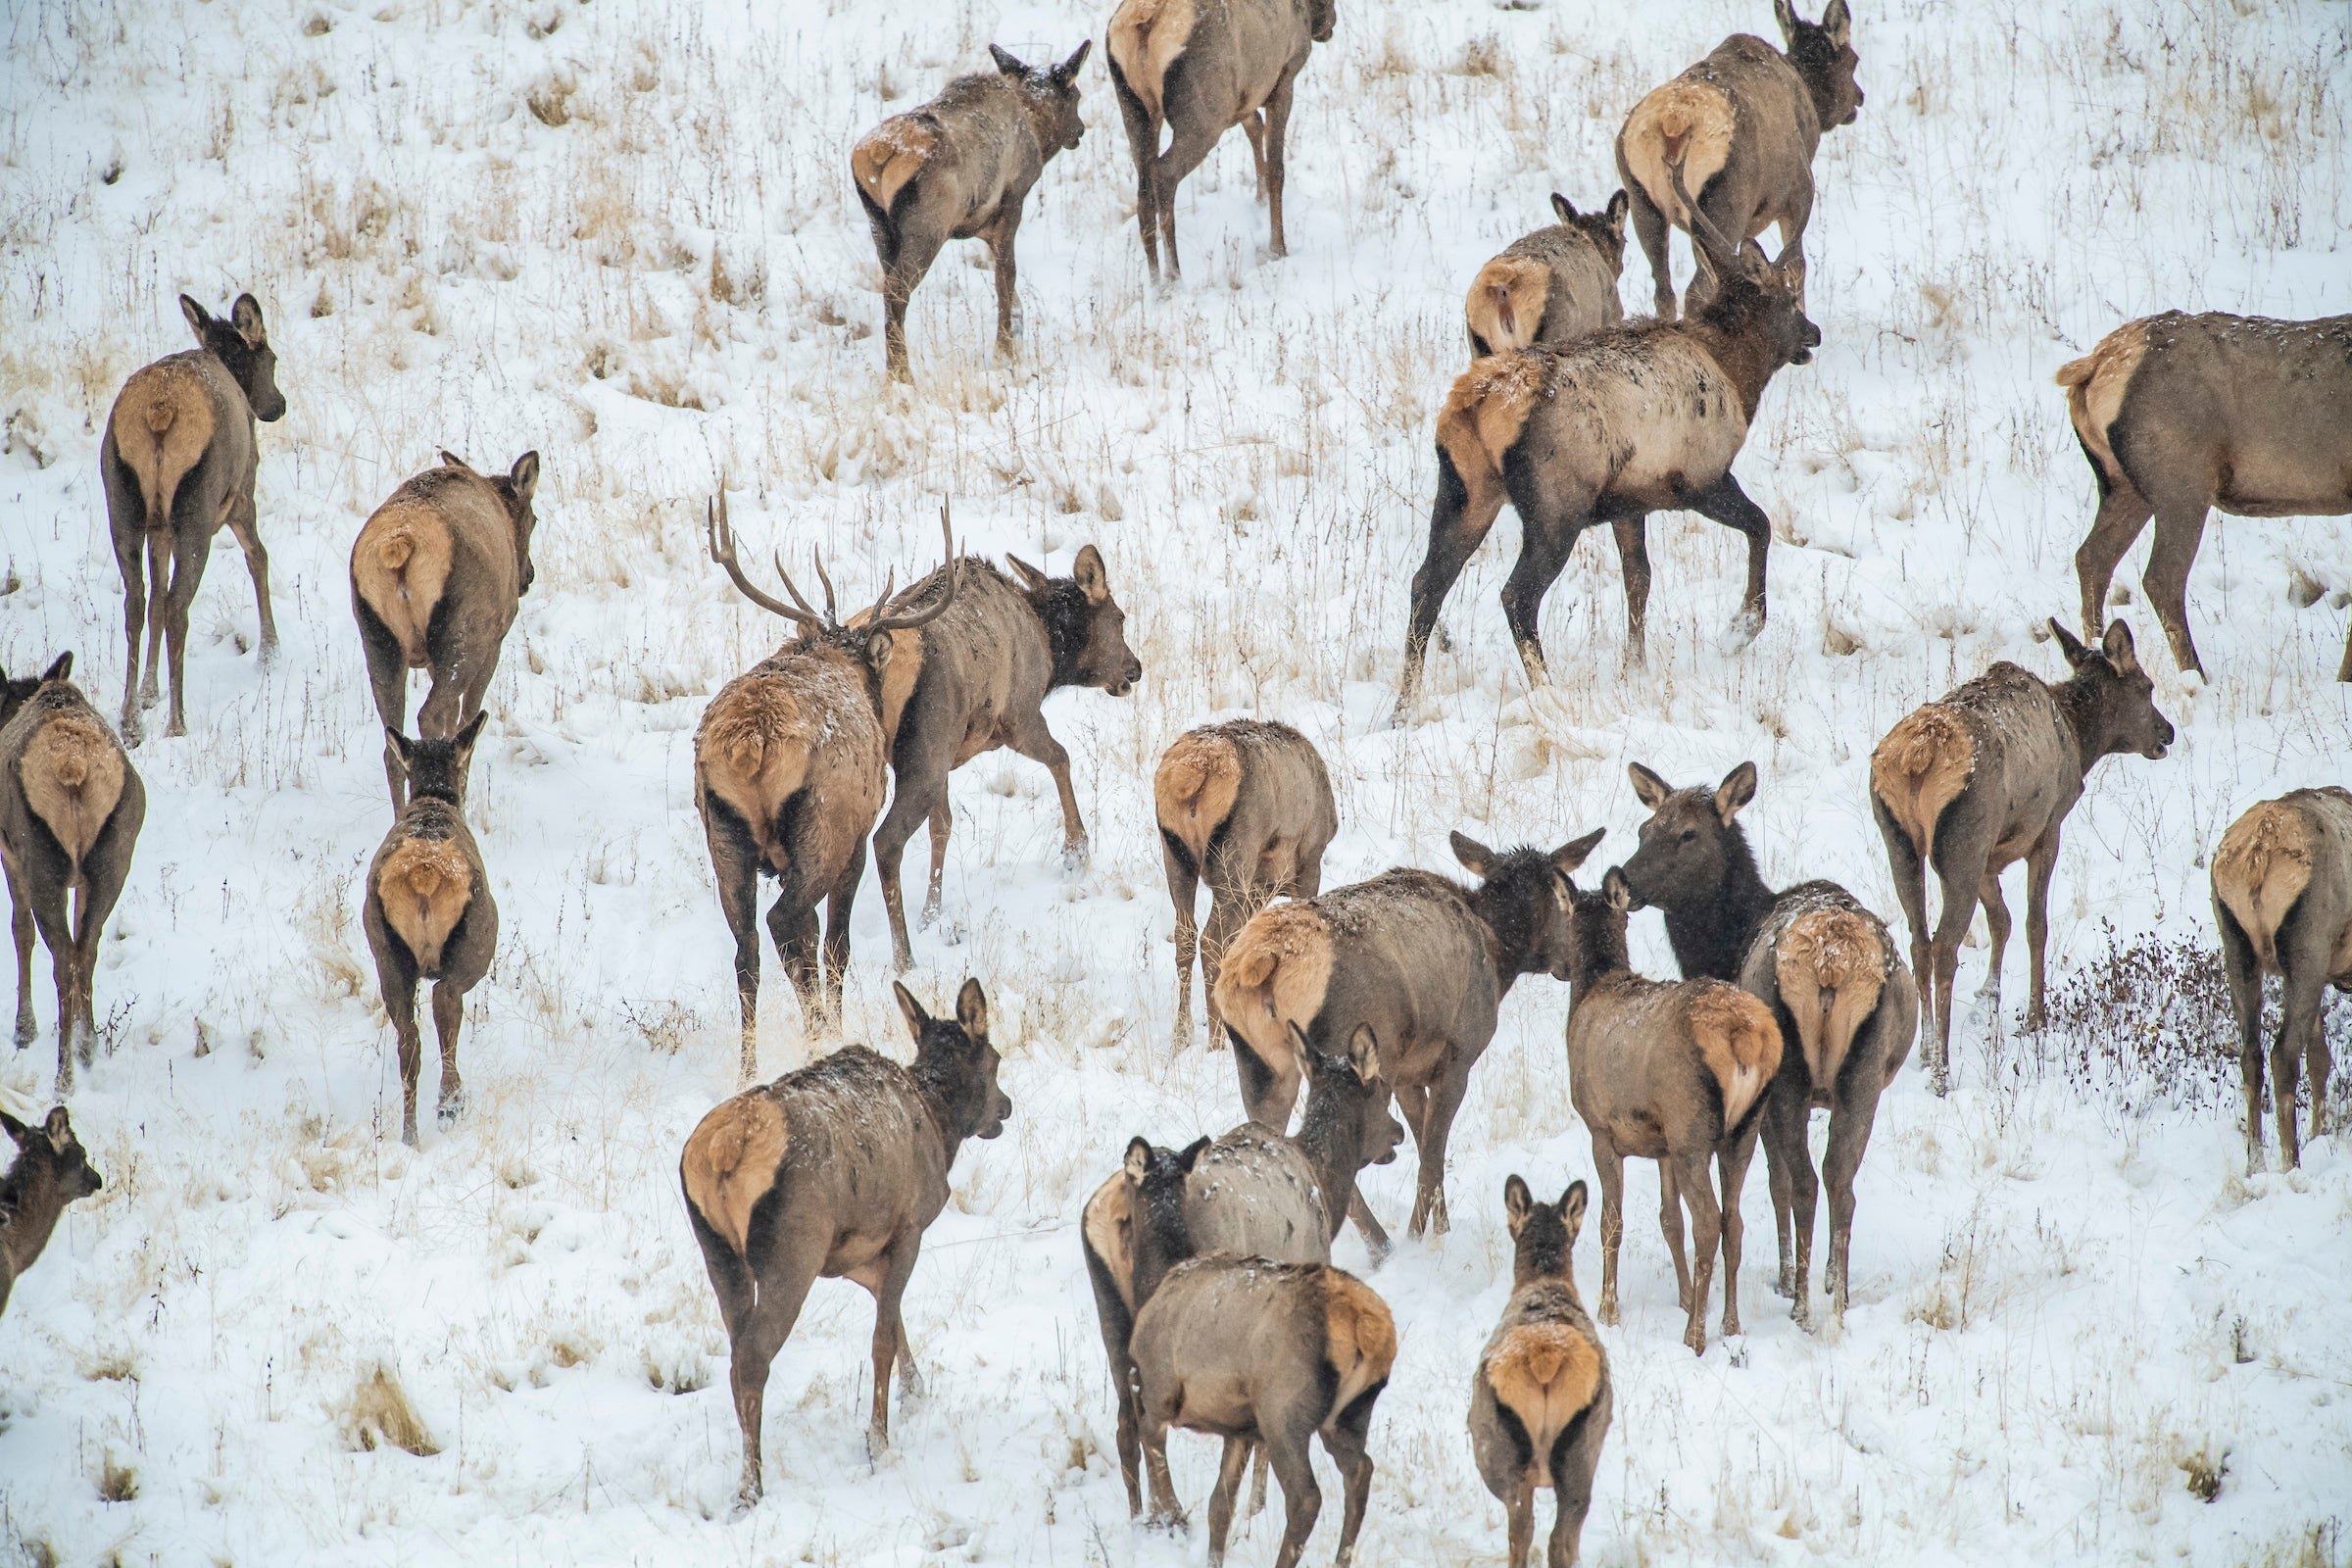 Elk Management in Montana Shows the Blind Spots of Our North American Model of Wildlife Conservation